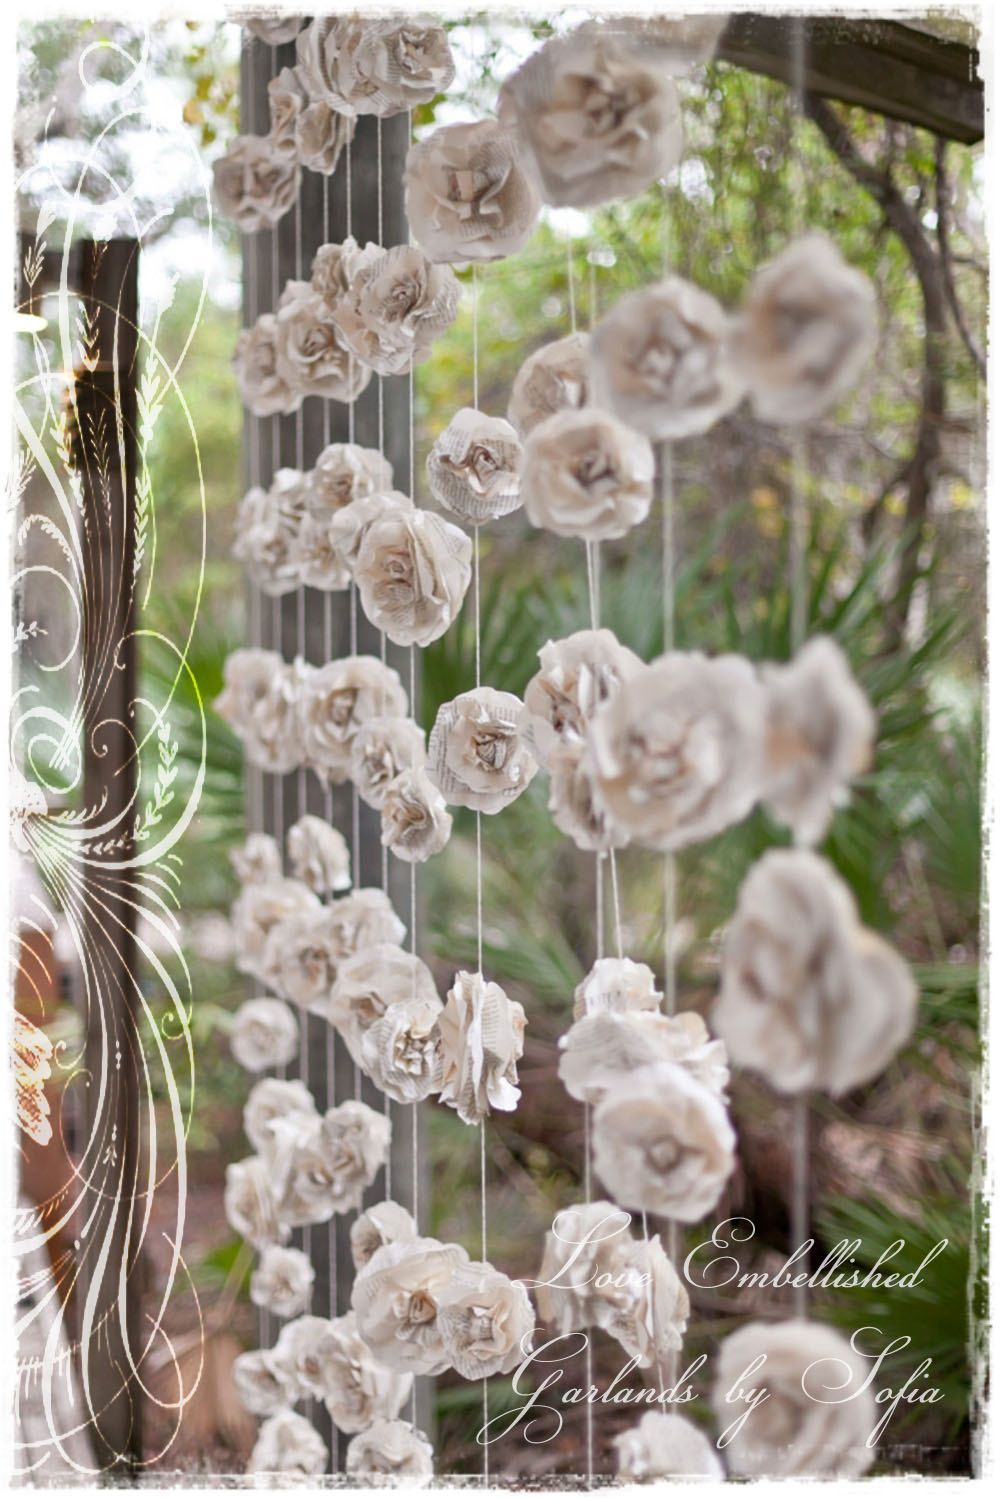 A curtain of twelve garlands create a stunning backdrop for your paper flowers in some places a curtain of 12 garlands wedding garland paper flower roses backdrop fills x area made with vintage book pages gorgeous dhlflorist Image collections